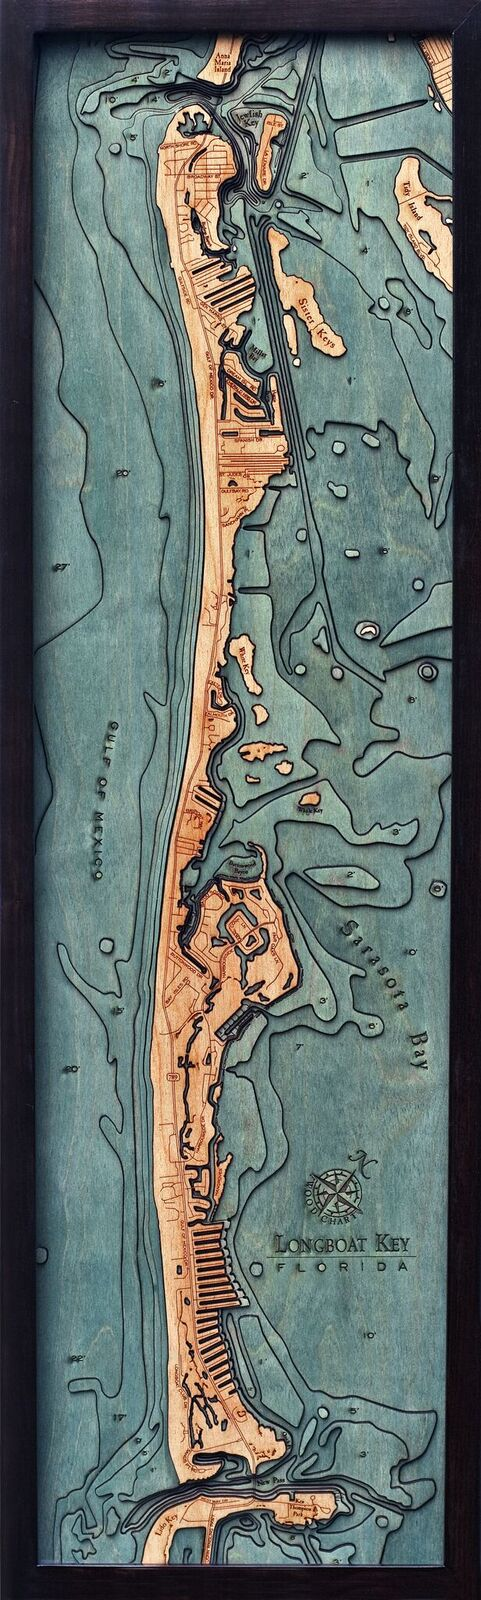 Bathymetric Map Longboat Keys, Florida